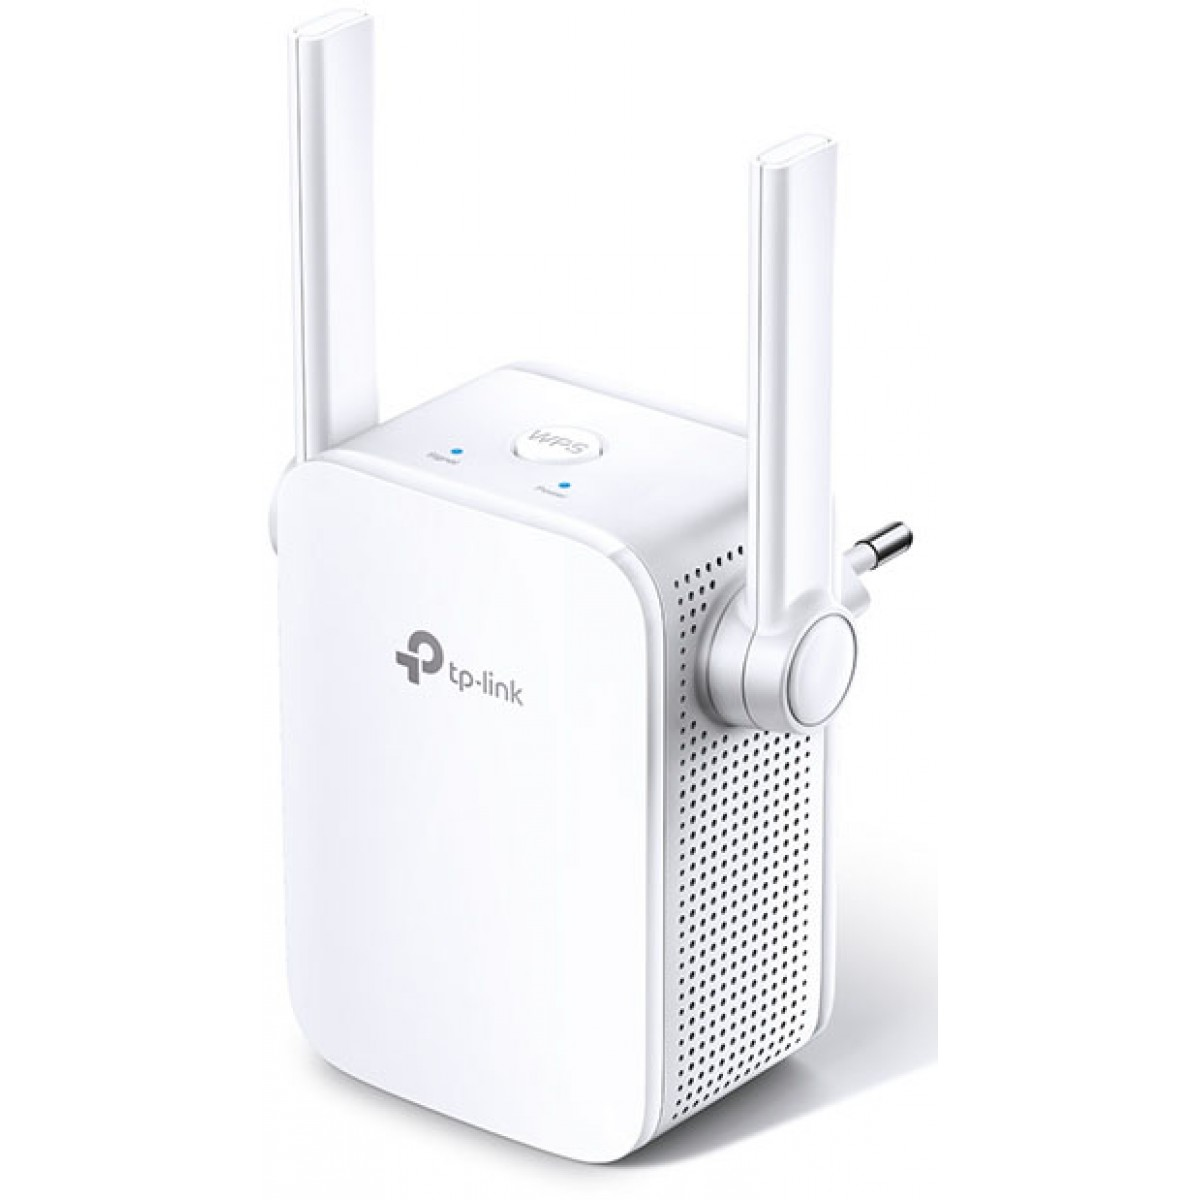 Repetidor Wi-Fi 300Mbps TP-Link, TL-WA855RE